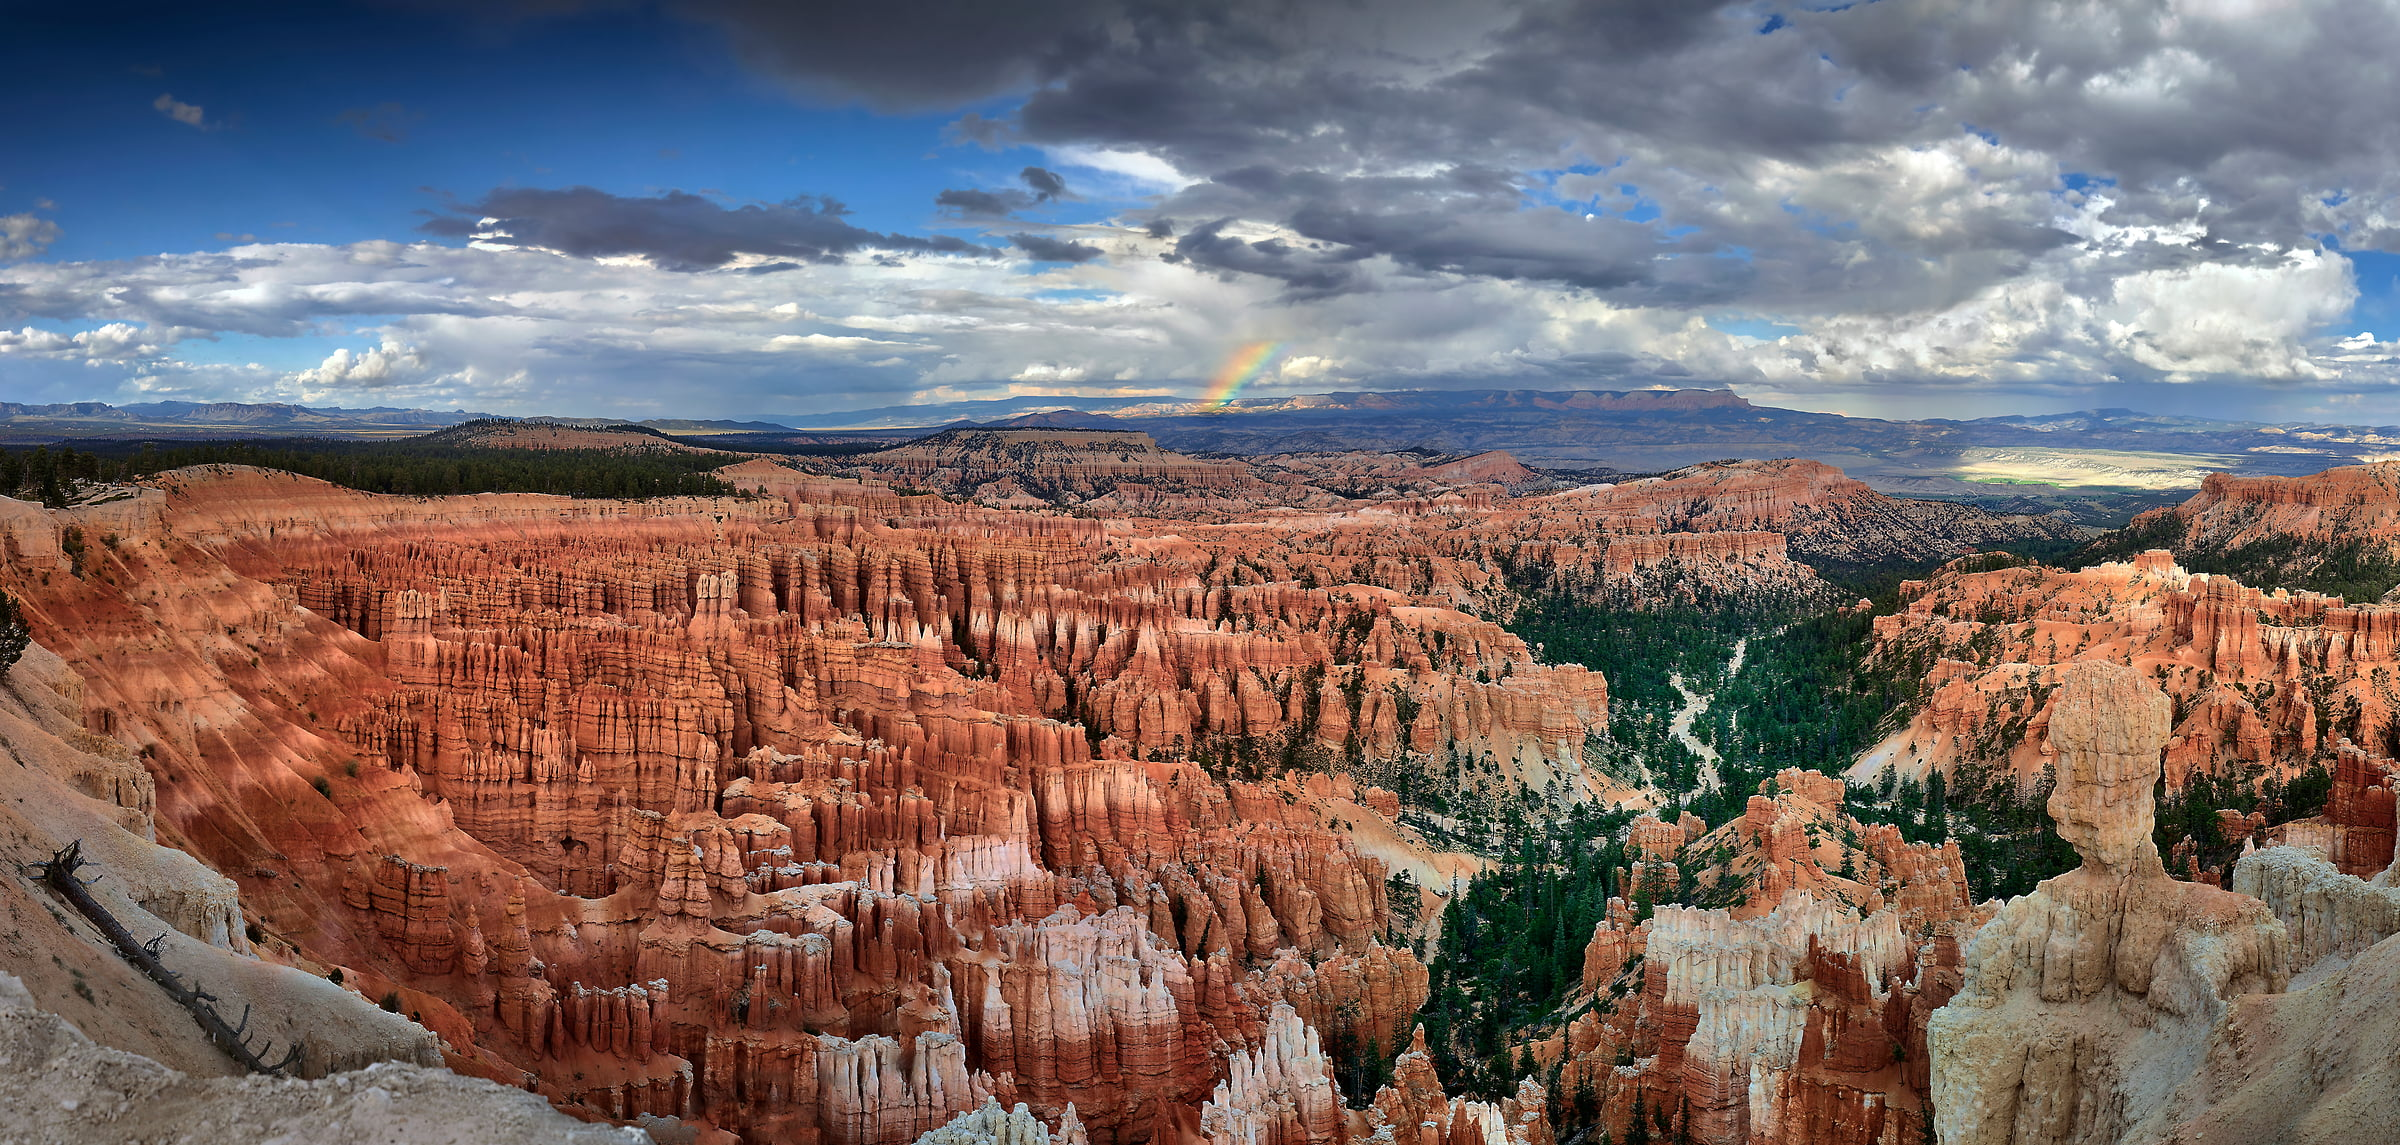 266 megapixels! A very high resolution landscape photo of Bryce Canyon National Park with a rainbow; VAST photo created by Phil Crawshay in Bryce Canyon, Utah, USA